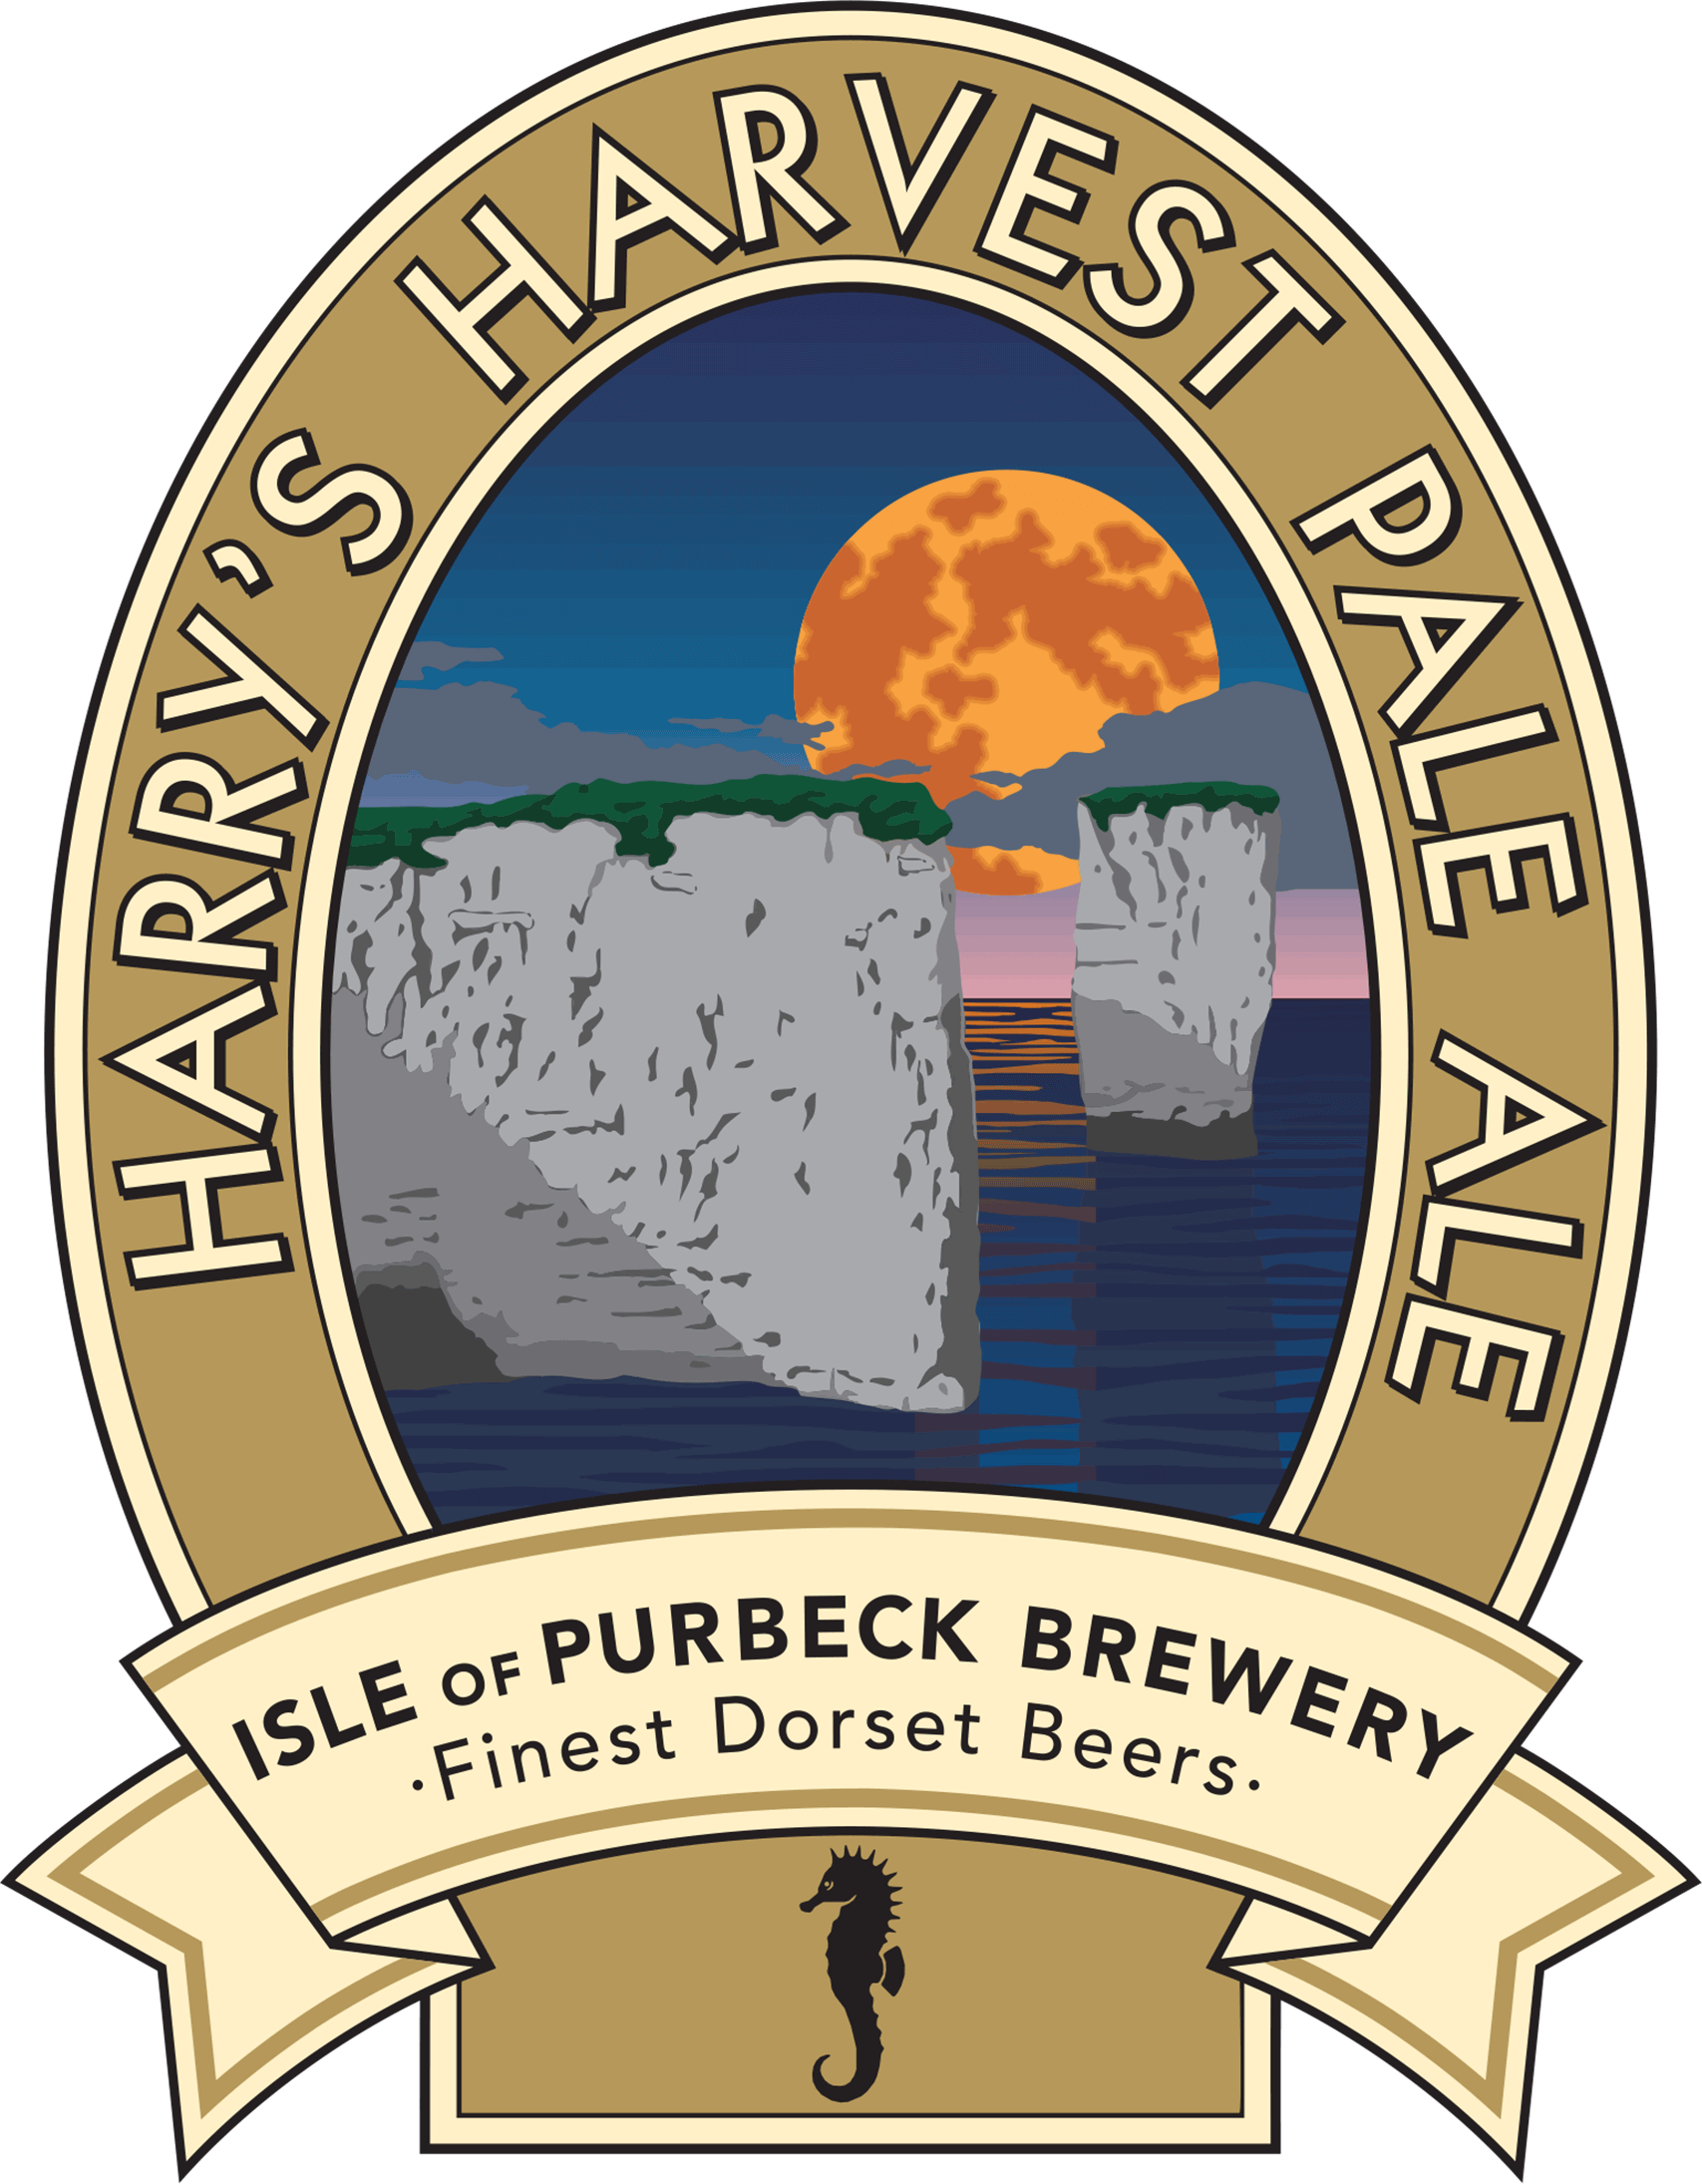 Isle of Purbeck Brewery Harry's Harvest Pale Ale pumpclip PNG